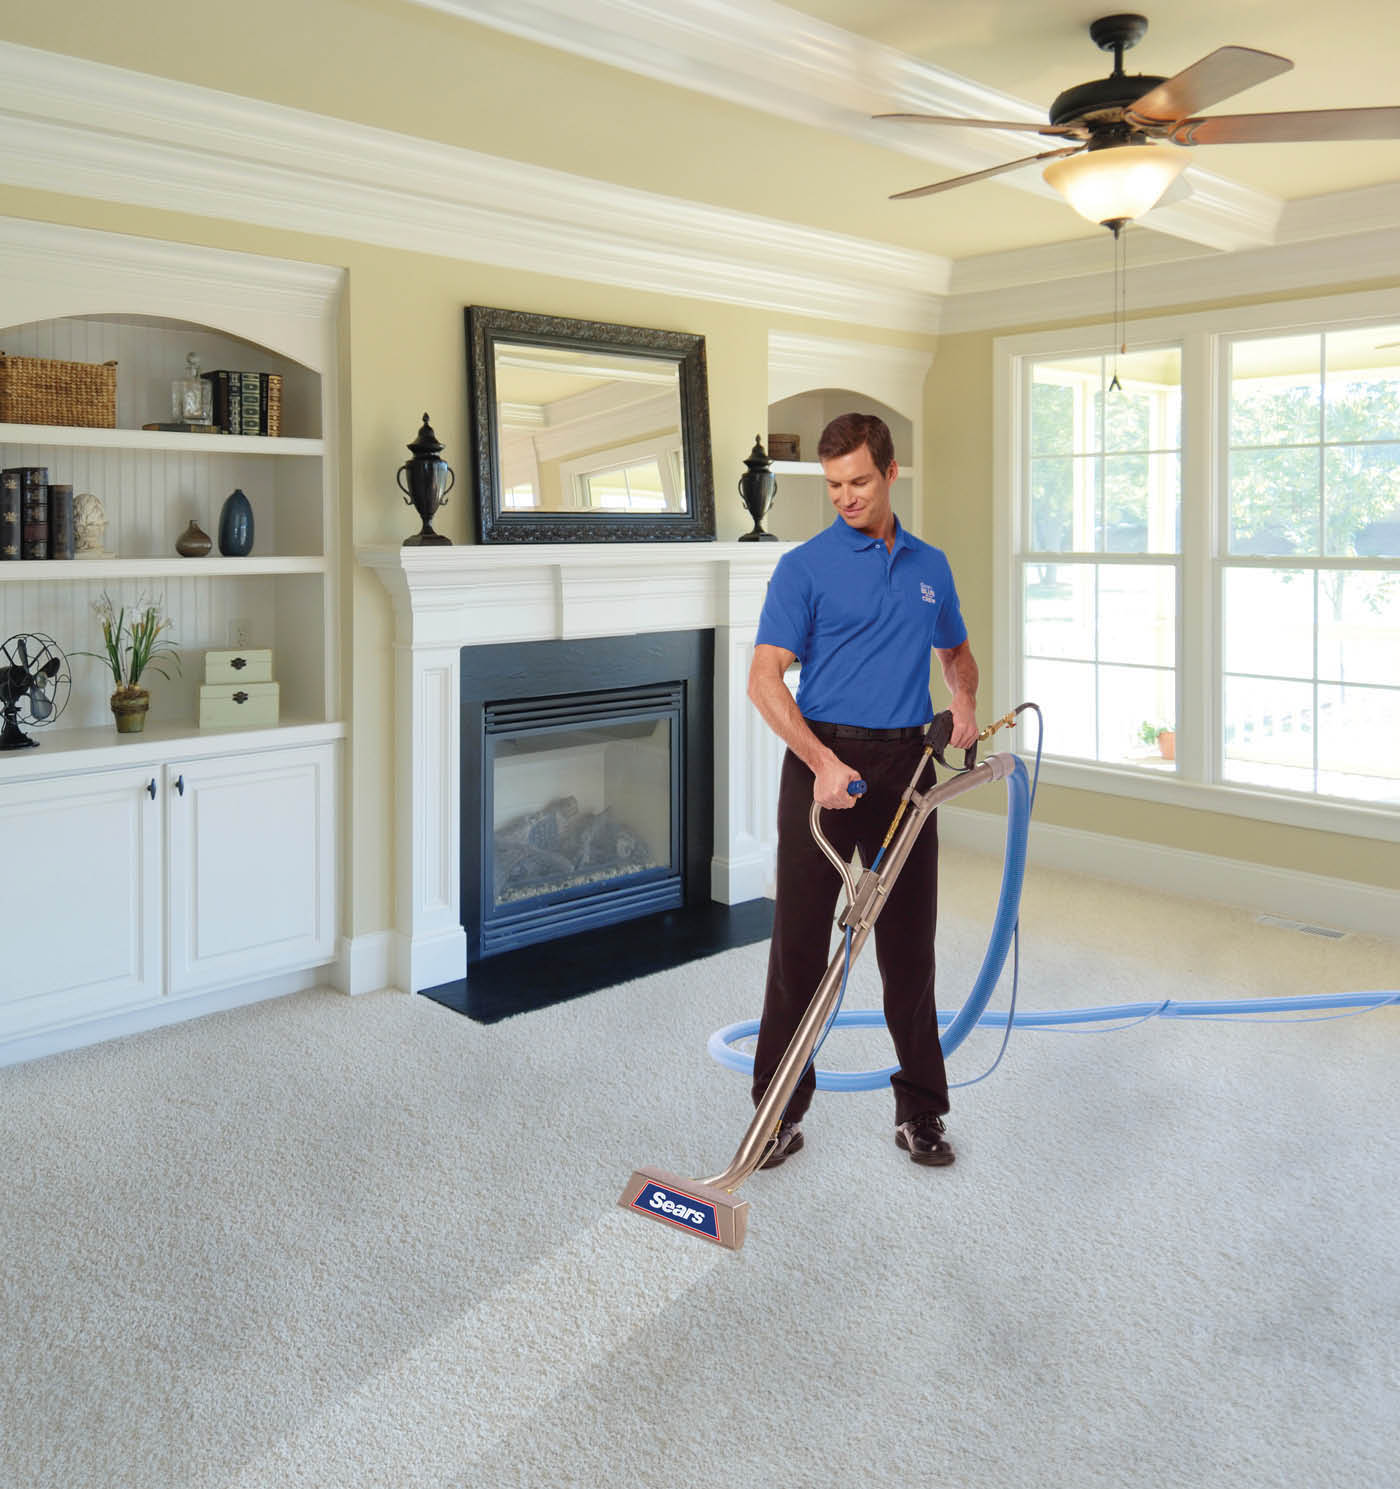 Home Carpet Cleaning Probeesteam Eco Friendly Professional Steam Cleaning In